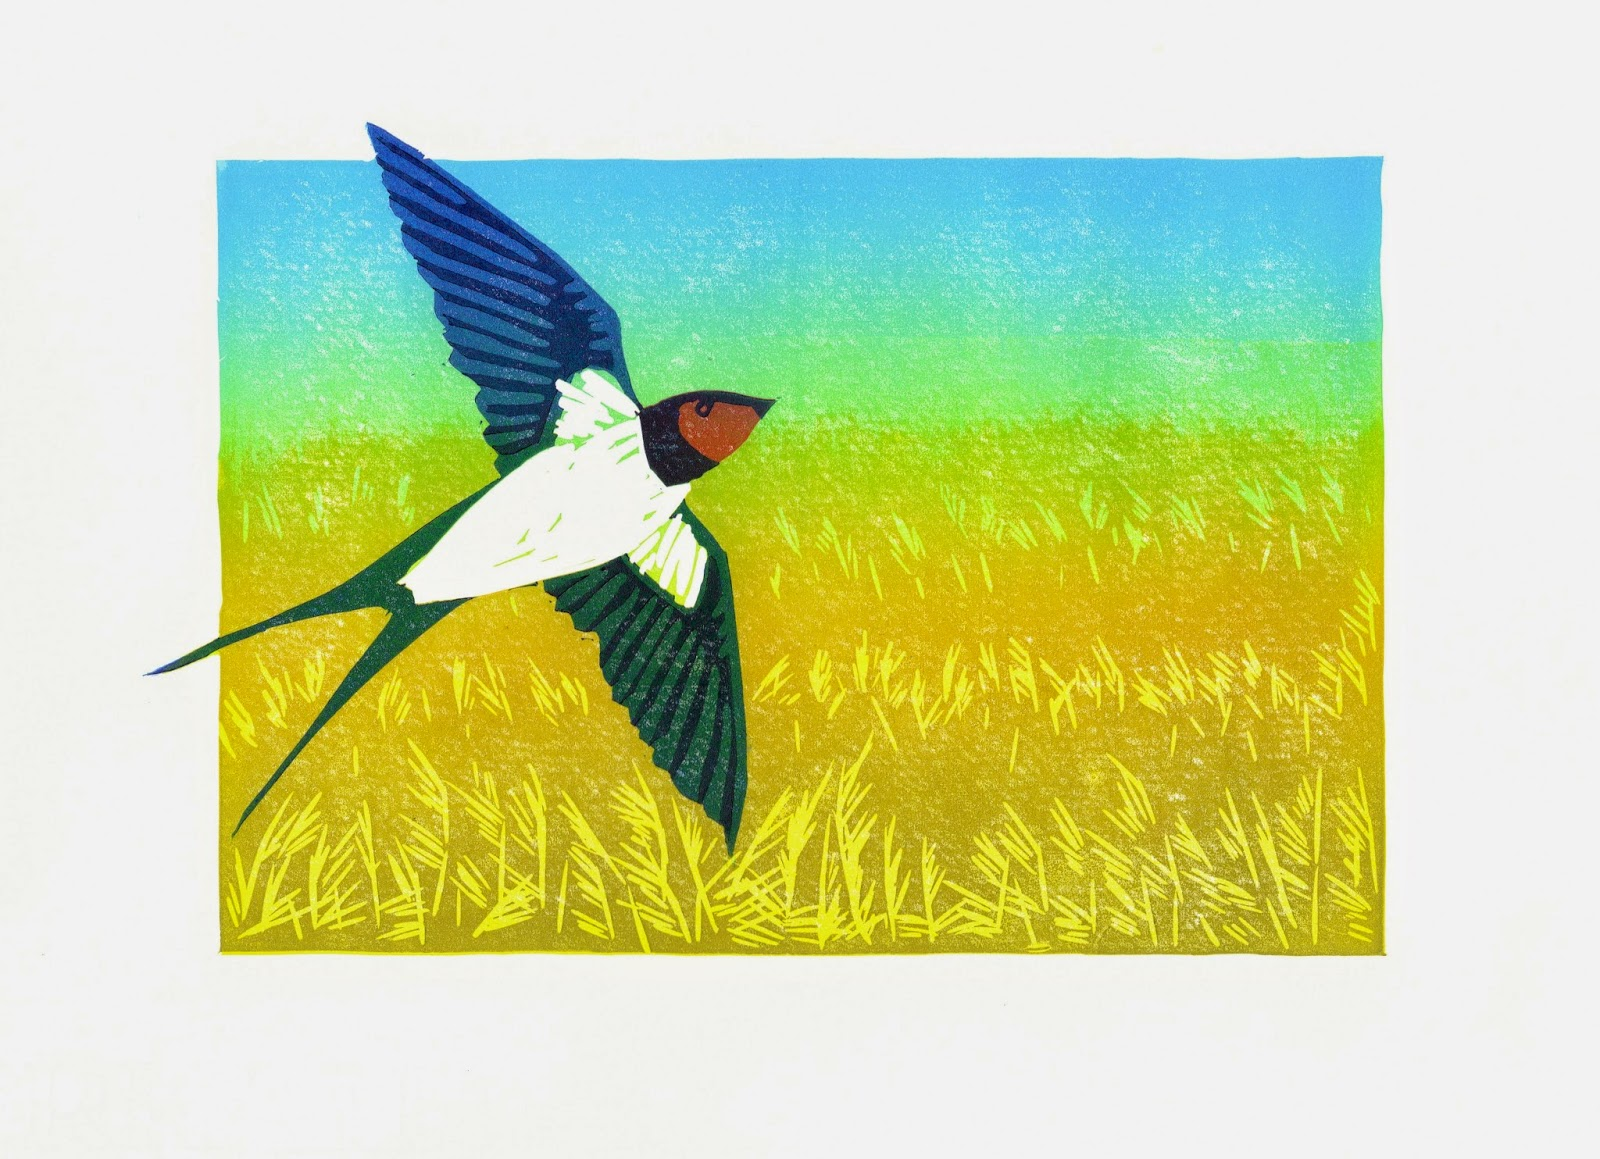 Swallow over Wicken Fen reedbeds linocut